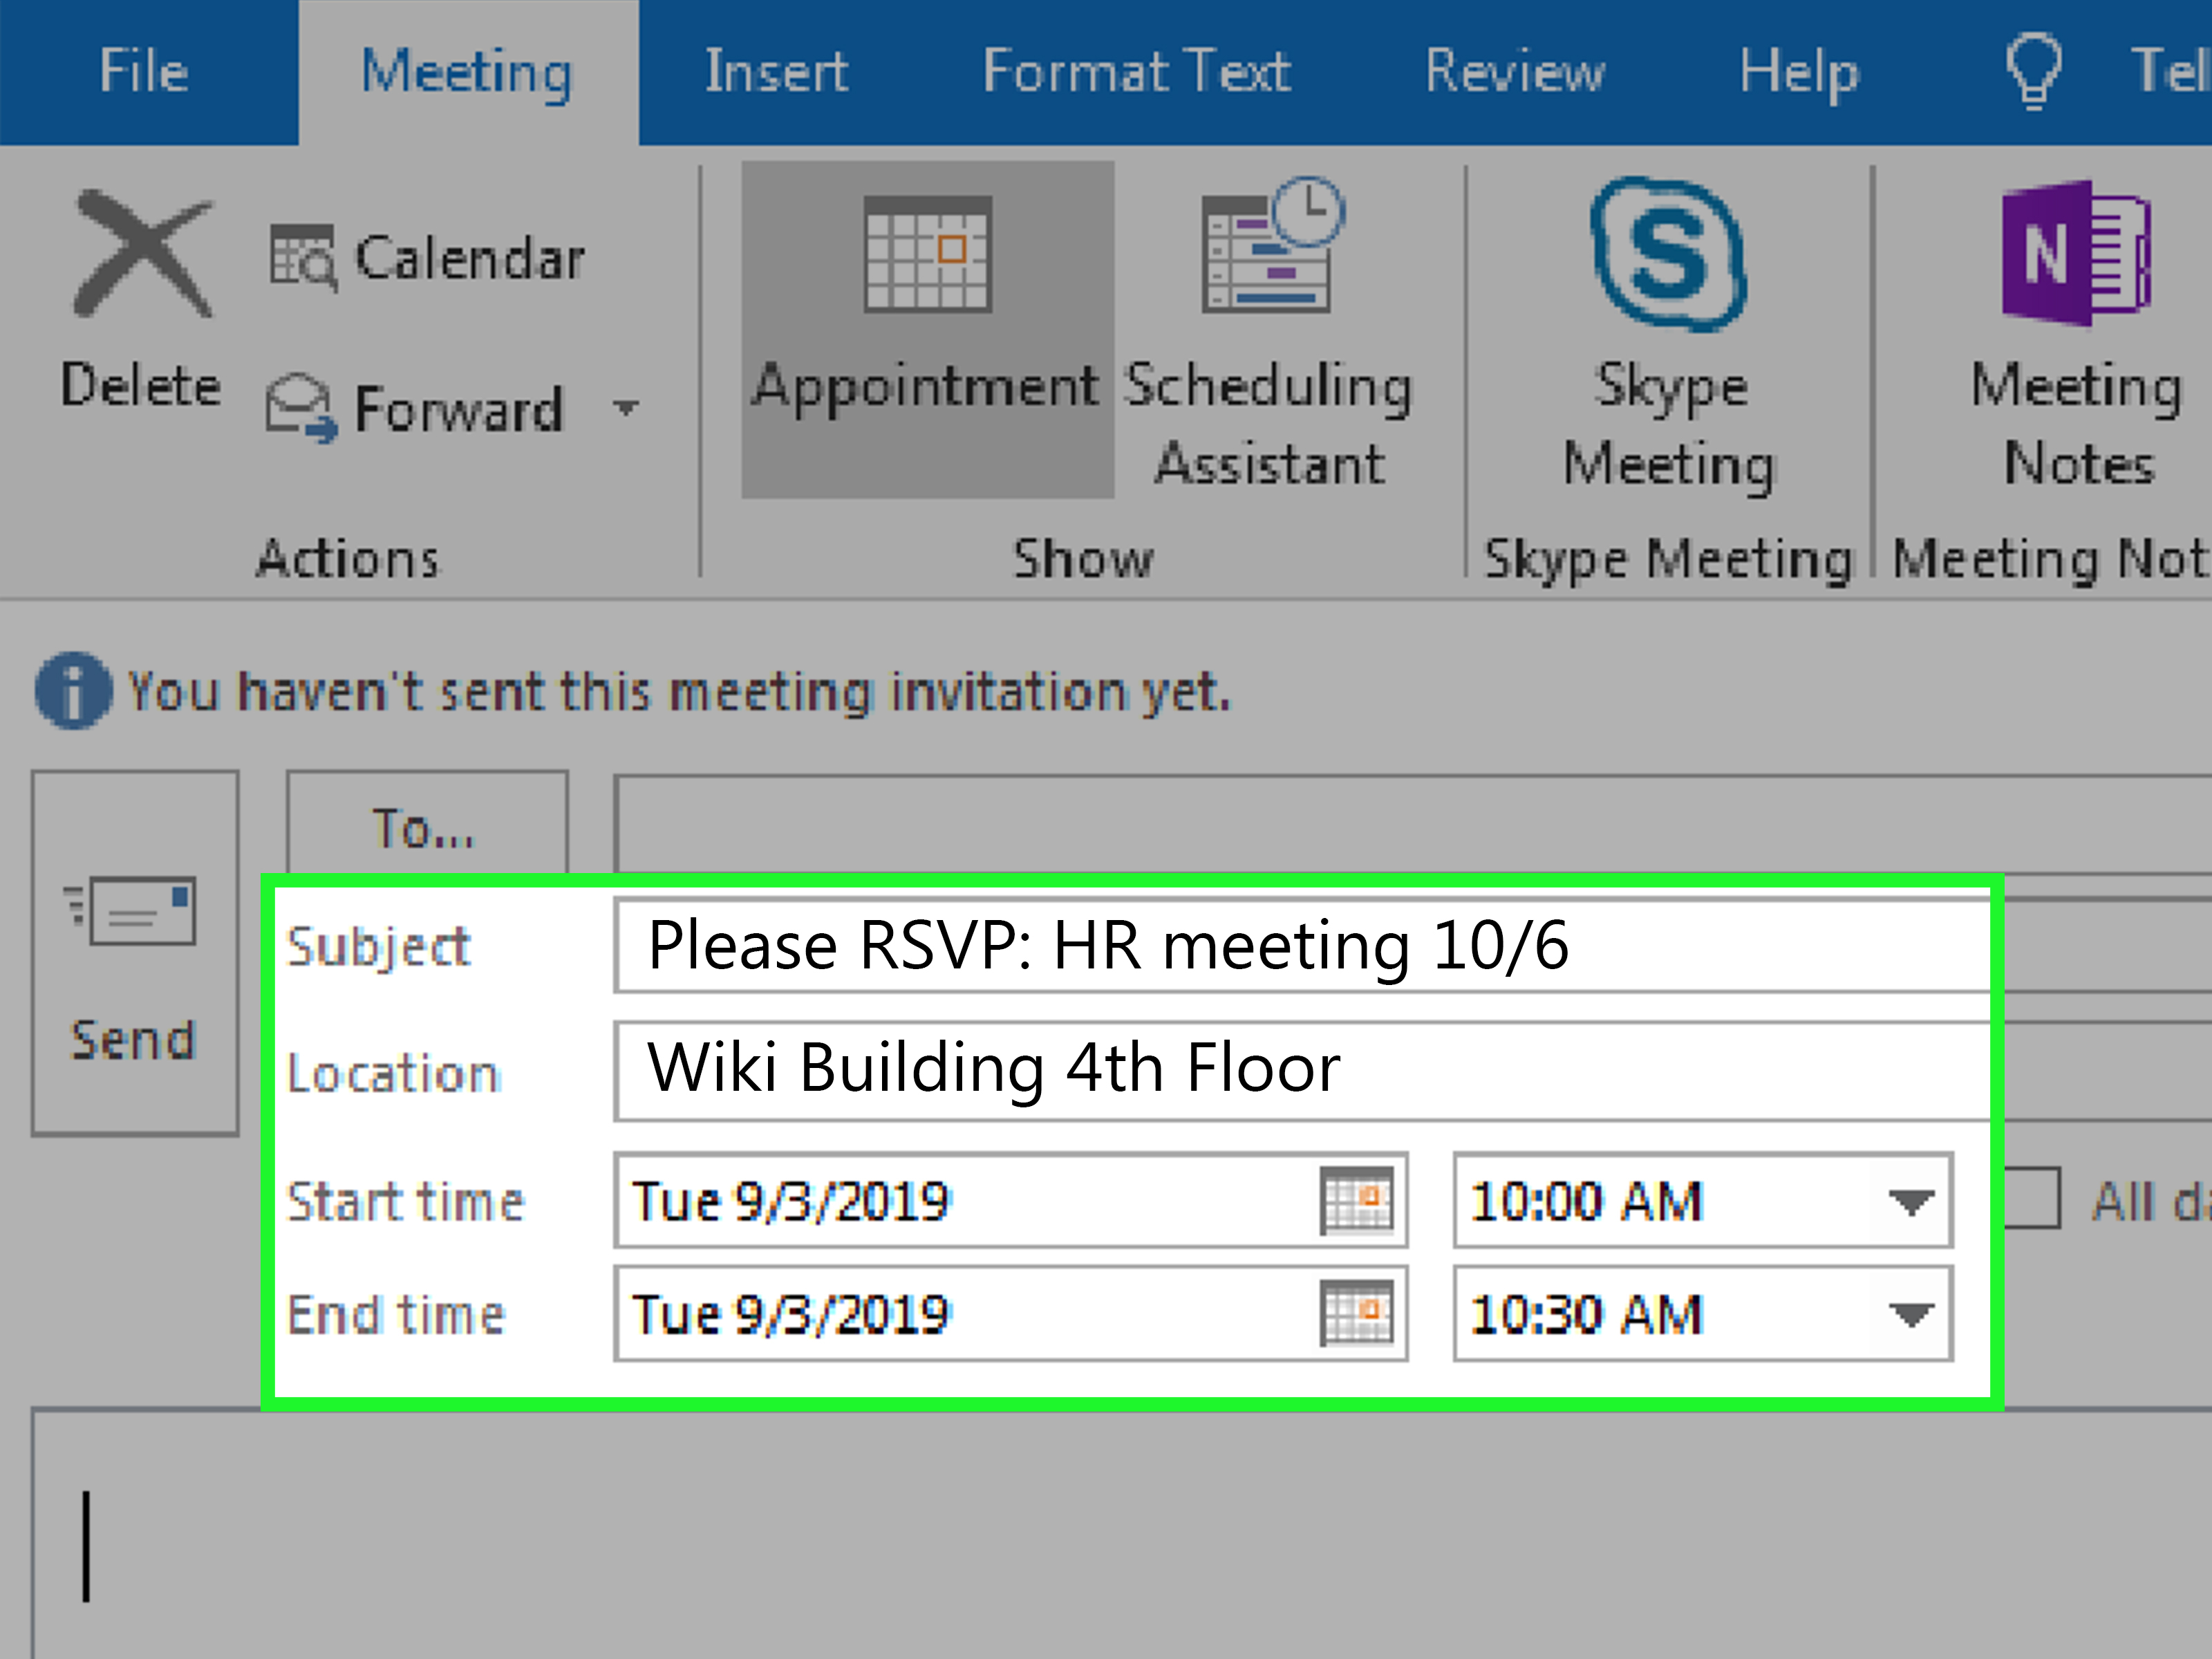 3 Ways To Write An Email For A Meeting Invitation - Wikihow